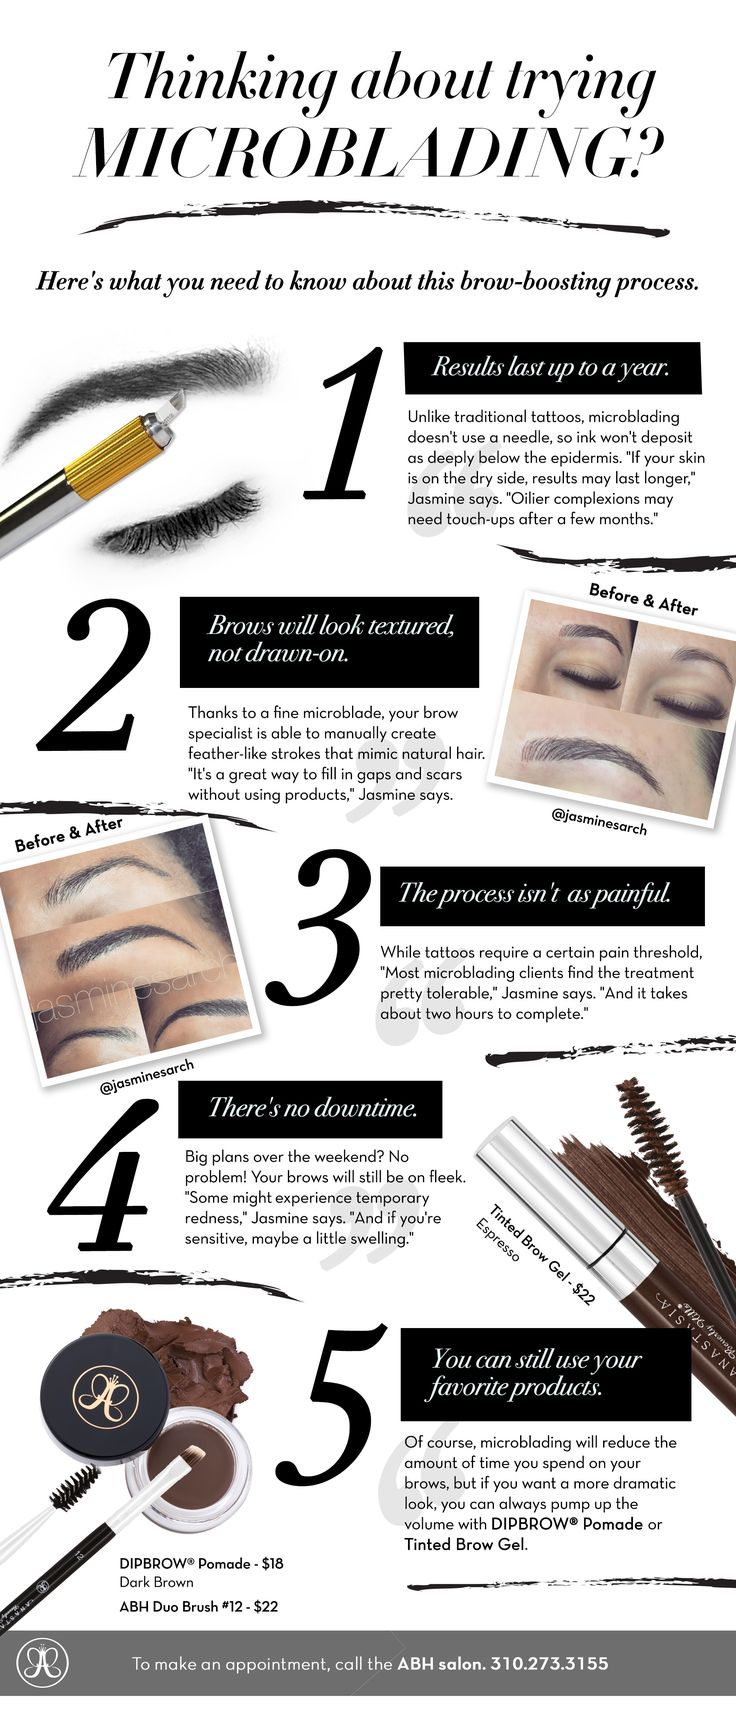 Beyond the Brow | Official Blog of Anastasia Beverly Hills - 5 Things to Know About Microblading